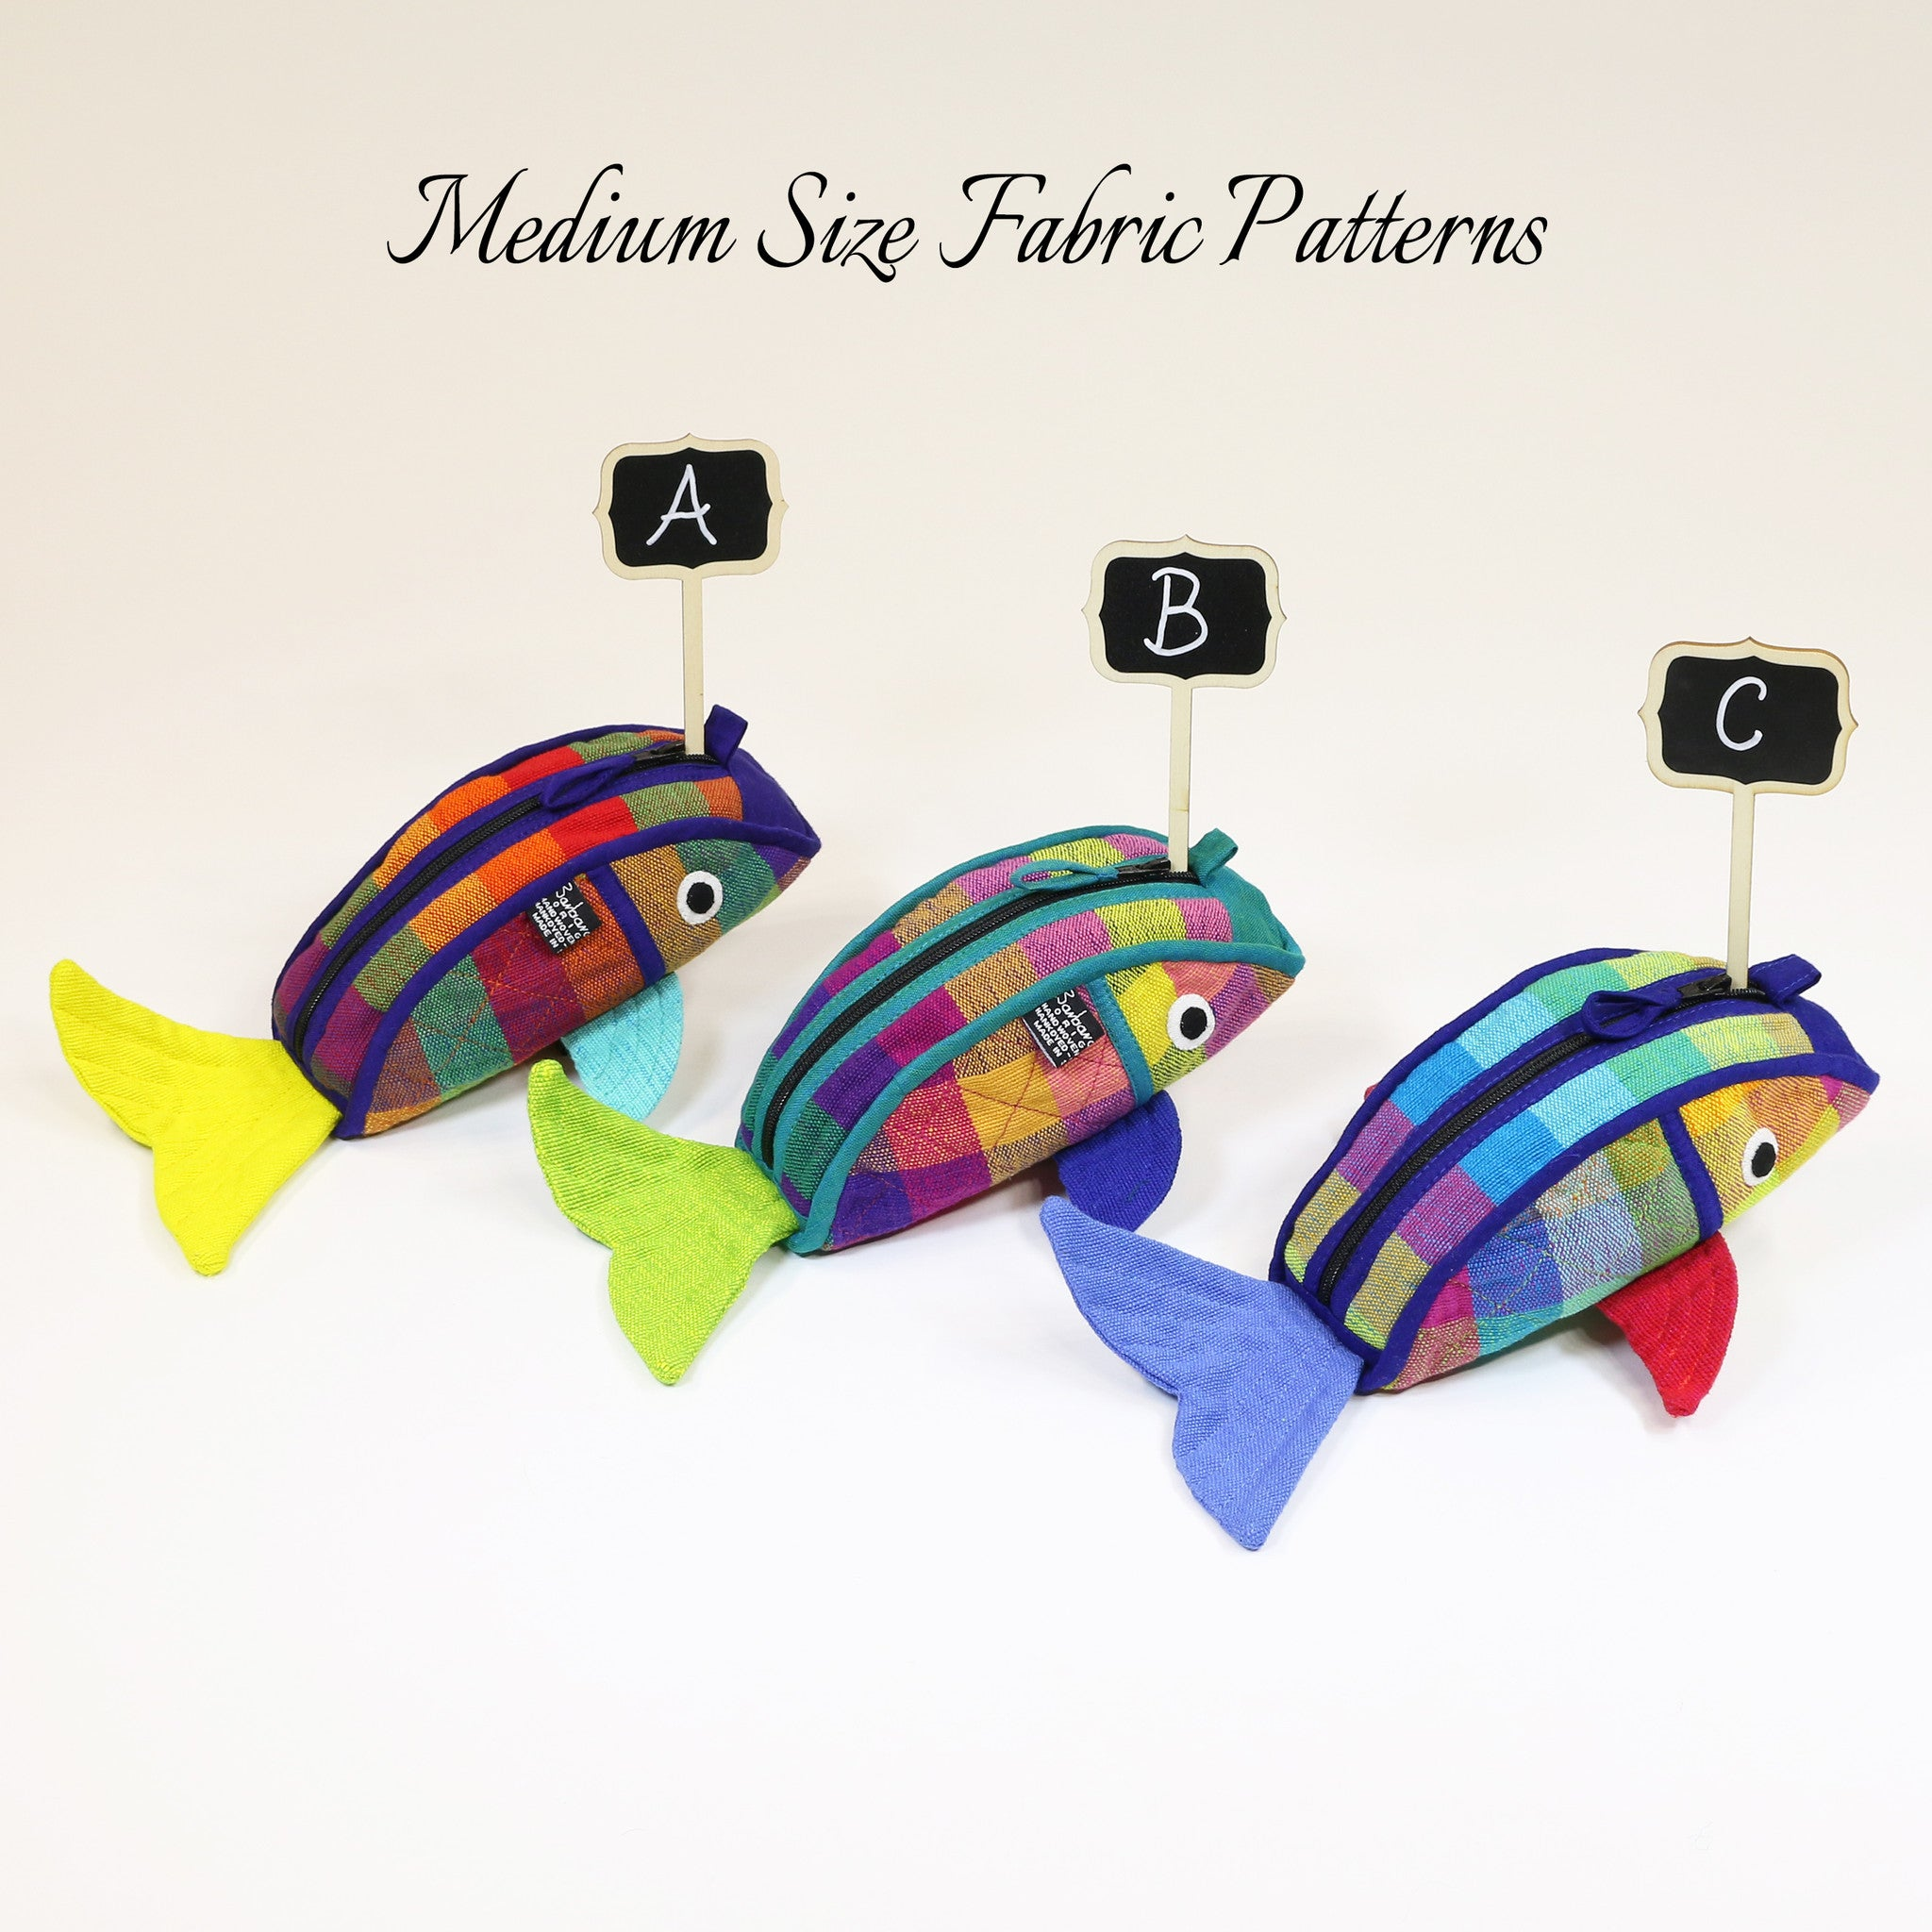 Fish Zip Pouch – medium size Carousel fabric patterns shown